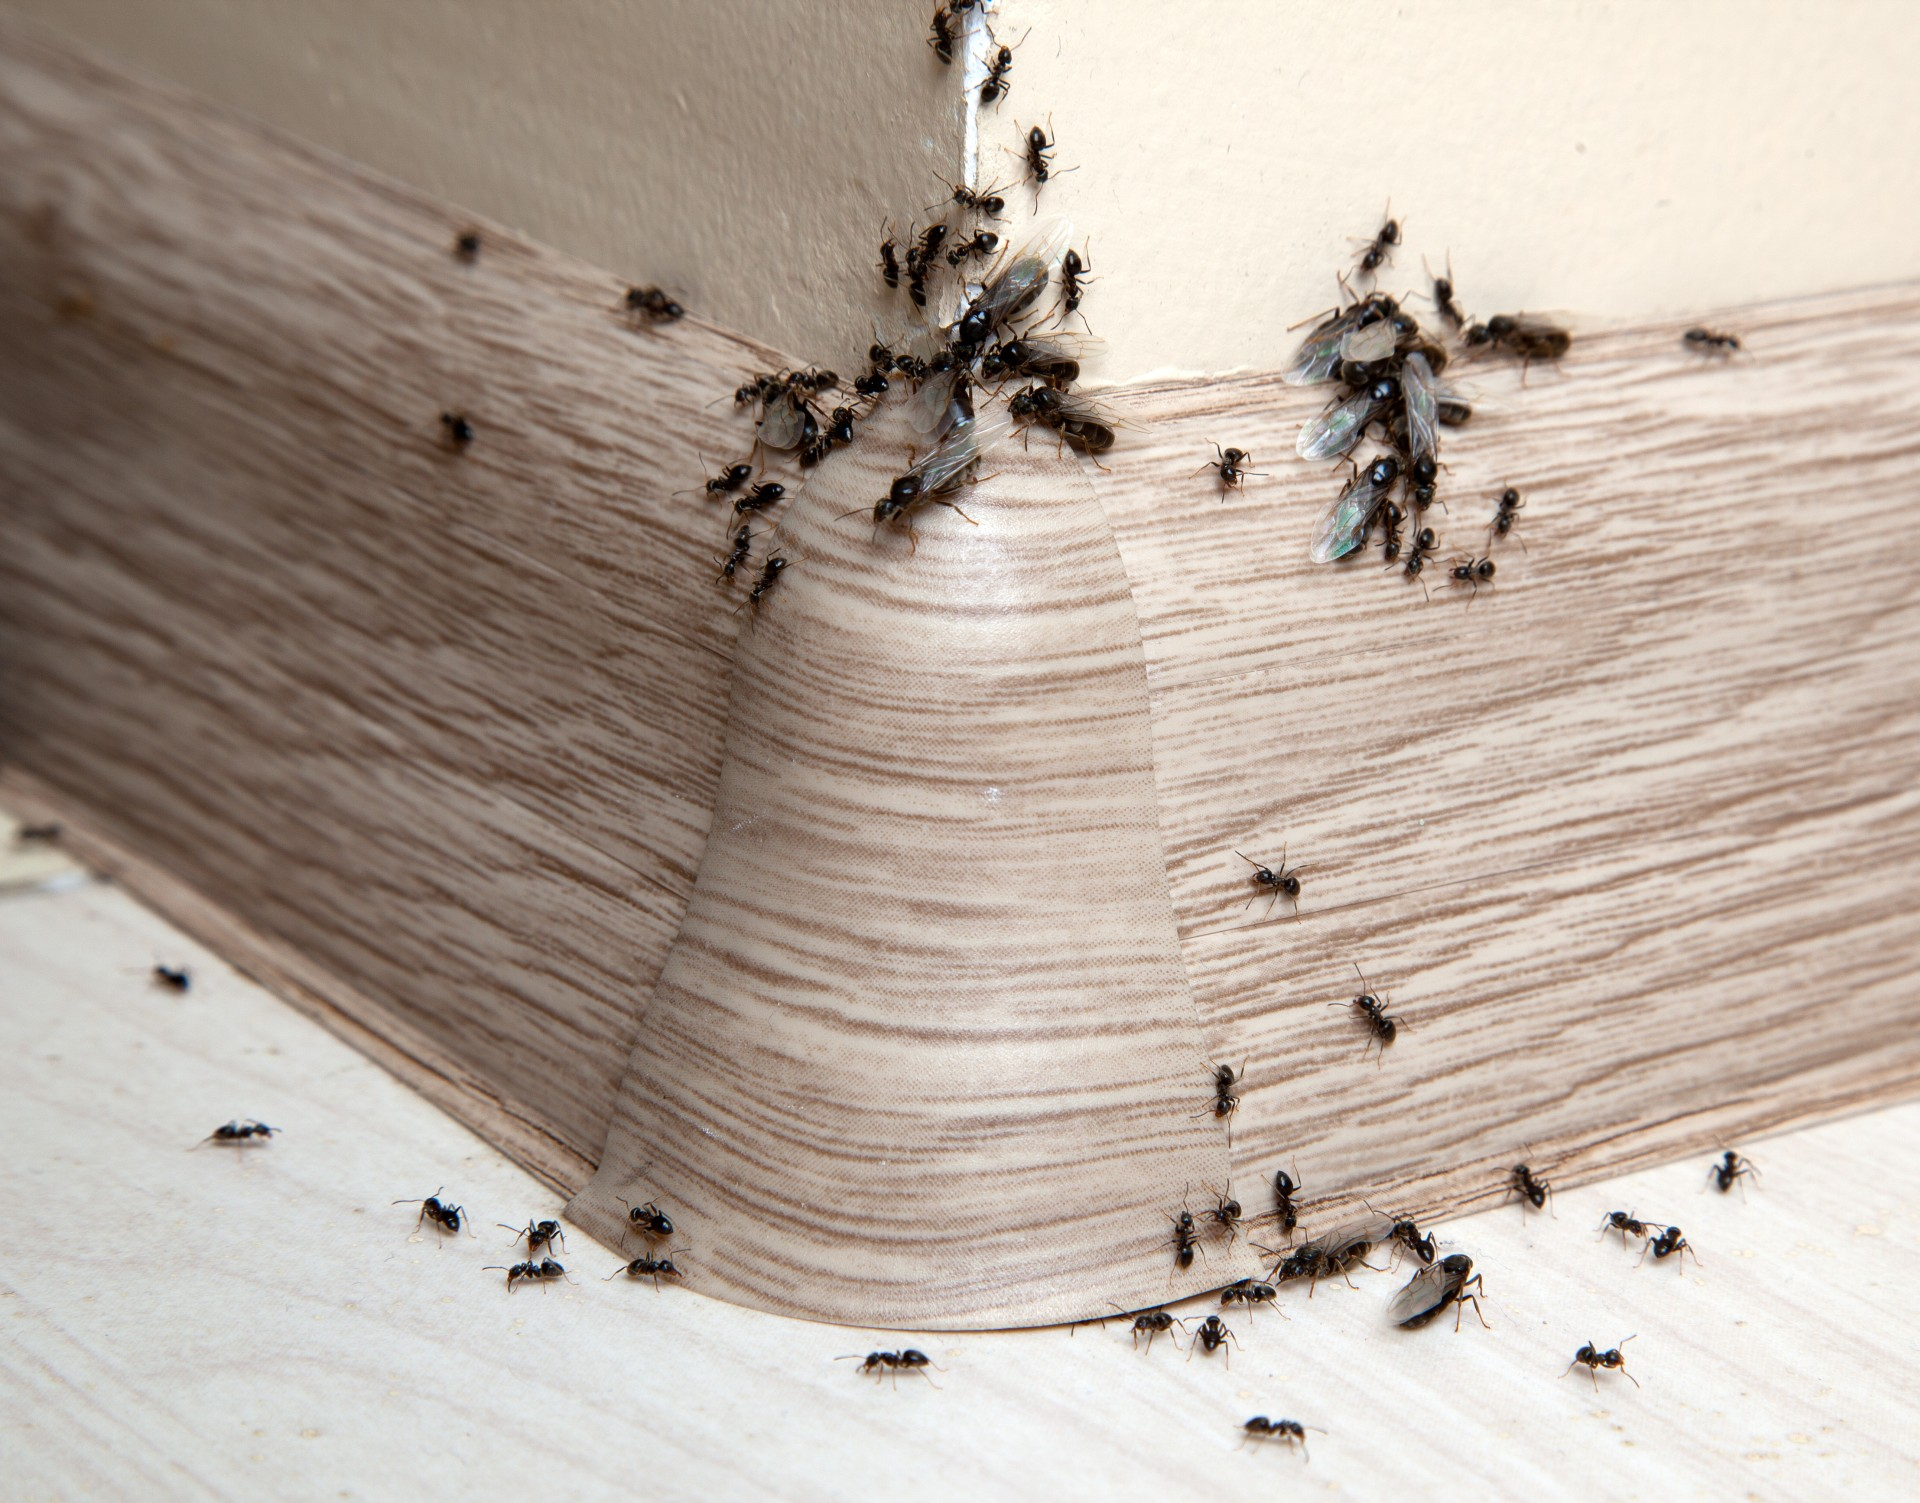 Ant Infestation, Pest Control in West Horsley, East Horsley, Effingham, KT24. Call Now 020 8166 9746